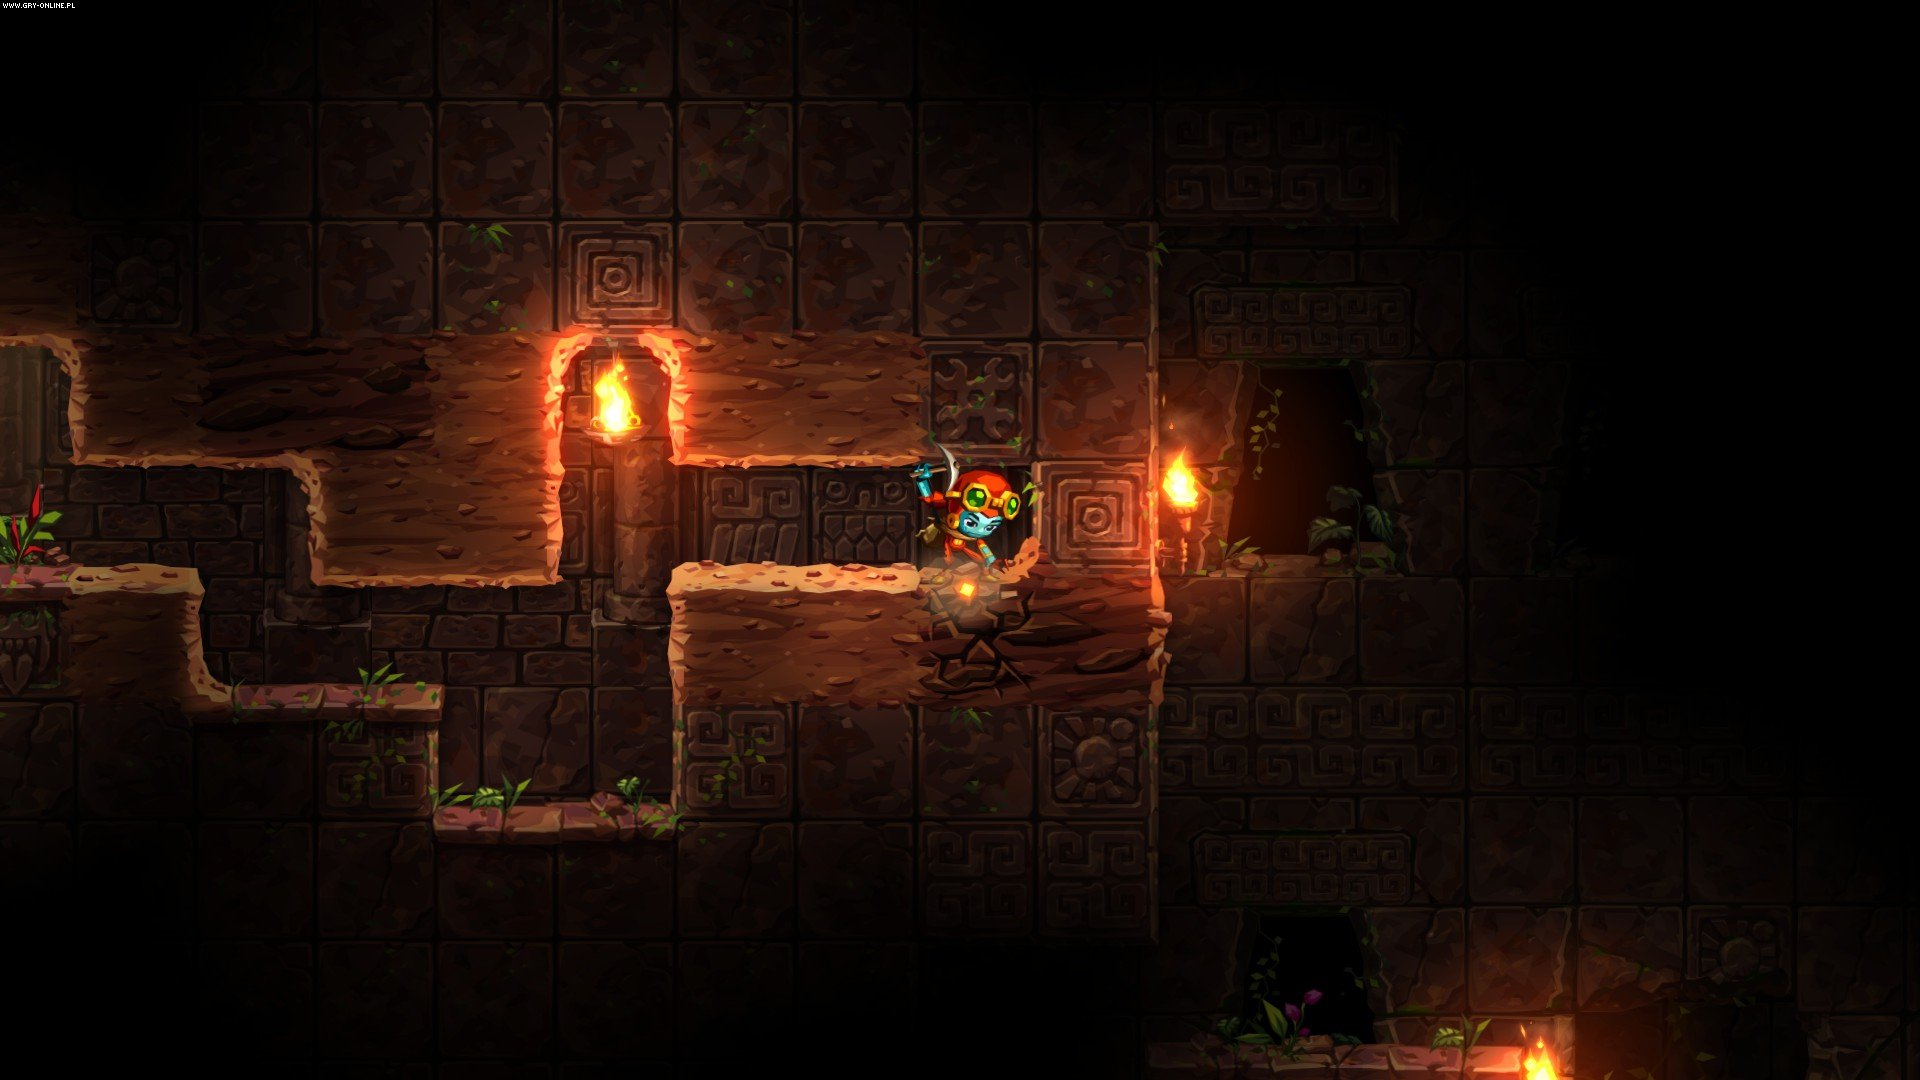 SteamWorld Dig 2 PC, PS4, Switch Games Image 28/28, Image & Form